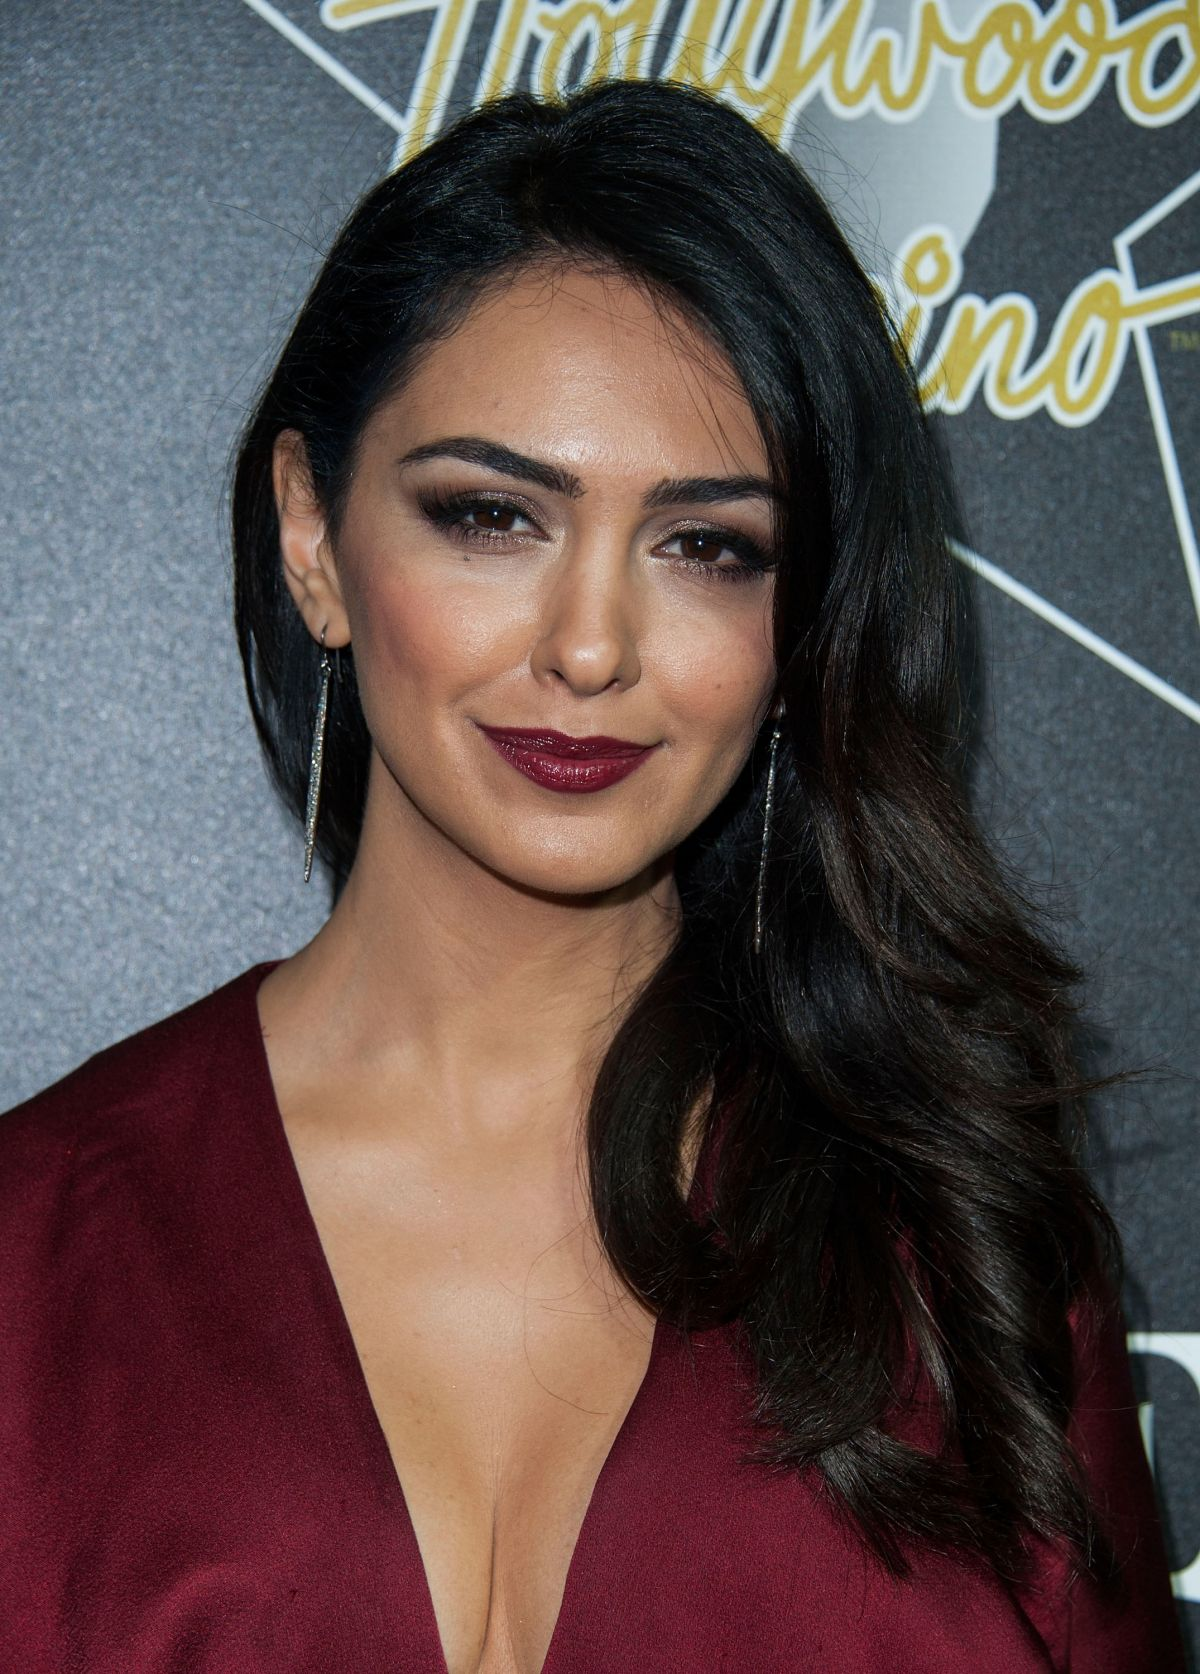 nazanin boniadi photonazanin boniadi how i met your mother, nazanin boniadi wikipedia, nazanin boniadi homeland, nazanin boniadi movies, nazanin boniadi grey's anatomy, nazanin boniadi youtube, nazanin boniadi instagram, nazanin boniadi iron man, nazanin boniadi tom cruise, nazanin boniadi ben hur, nazanin boniadi 2016, nazanin boniadi weight height, nazanin boniadi photo, nazanin boniadi biography, nazanin boniadi husband, nazanin boniadi kimdir, nazanin boniadi wiki, nazanin boniadi video